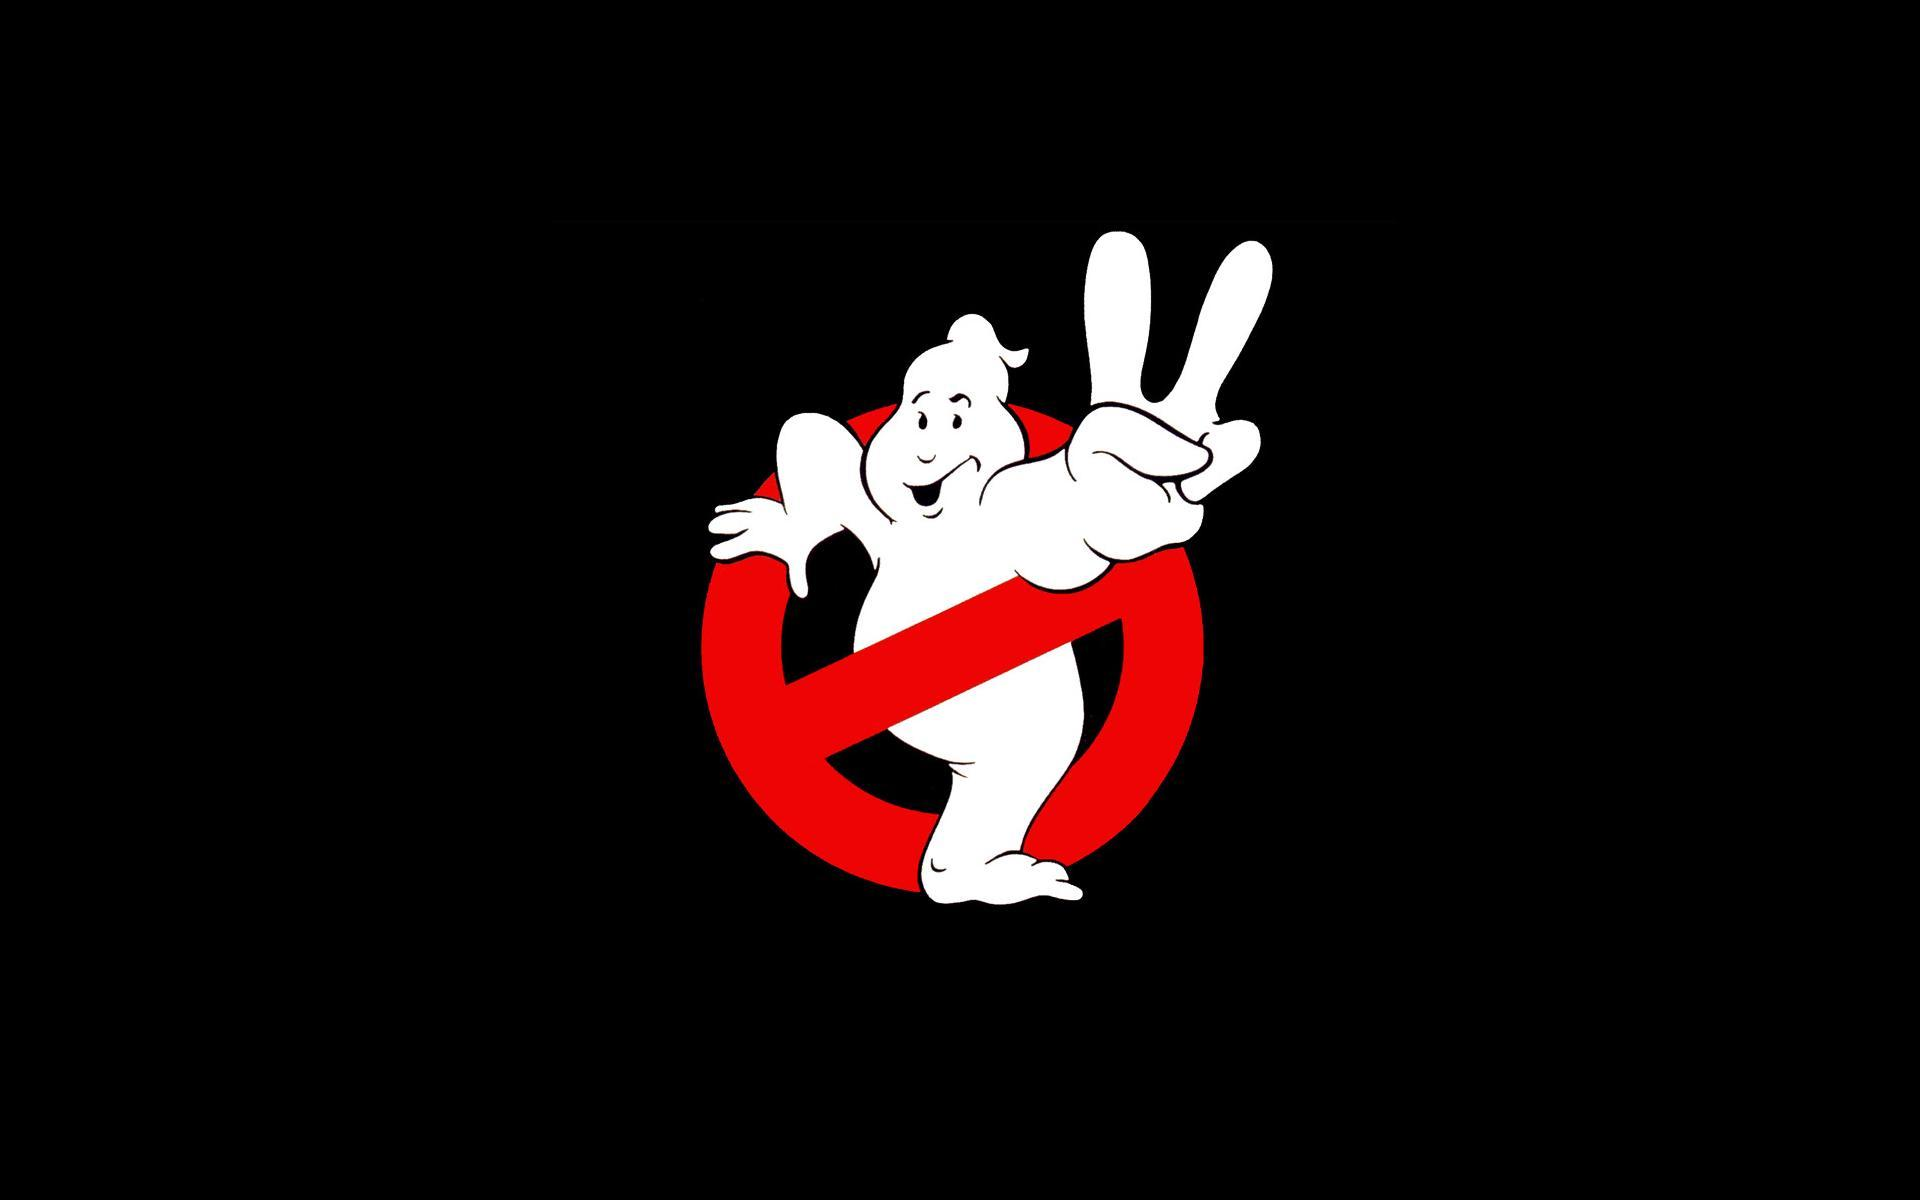 ghostbusters ii full hd wallpaper and background image | 1920x1200